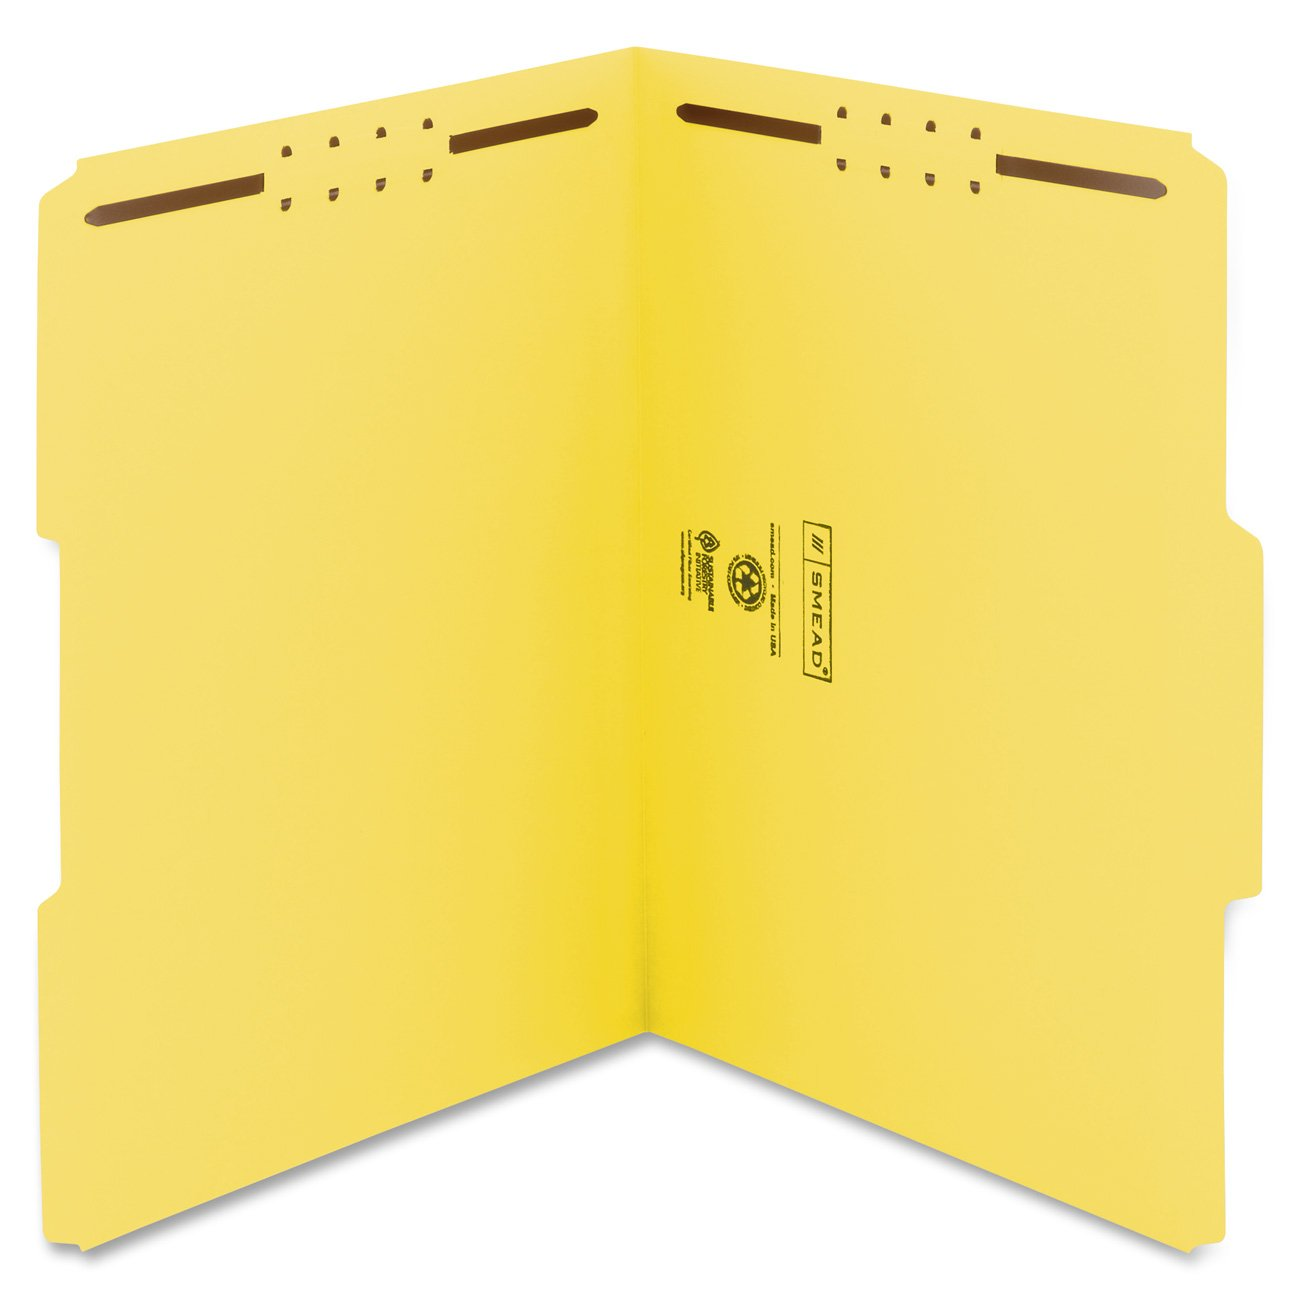 Smead Fastener, Folder Letter, Two 2-Inch K Style #1 and #3 Fasteners, 1/3 Cut Tab, Yellow, 50 Per Box (12940)